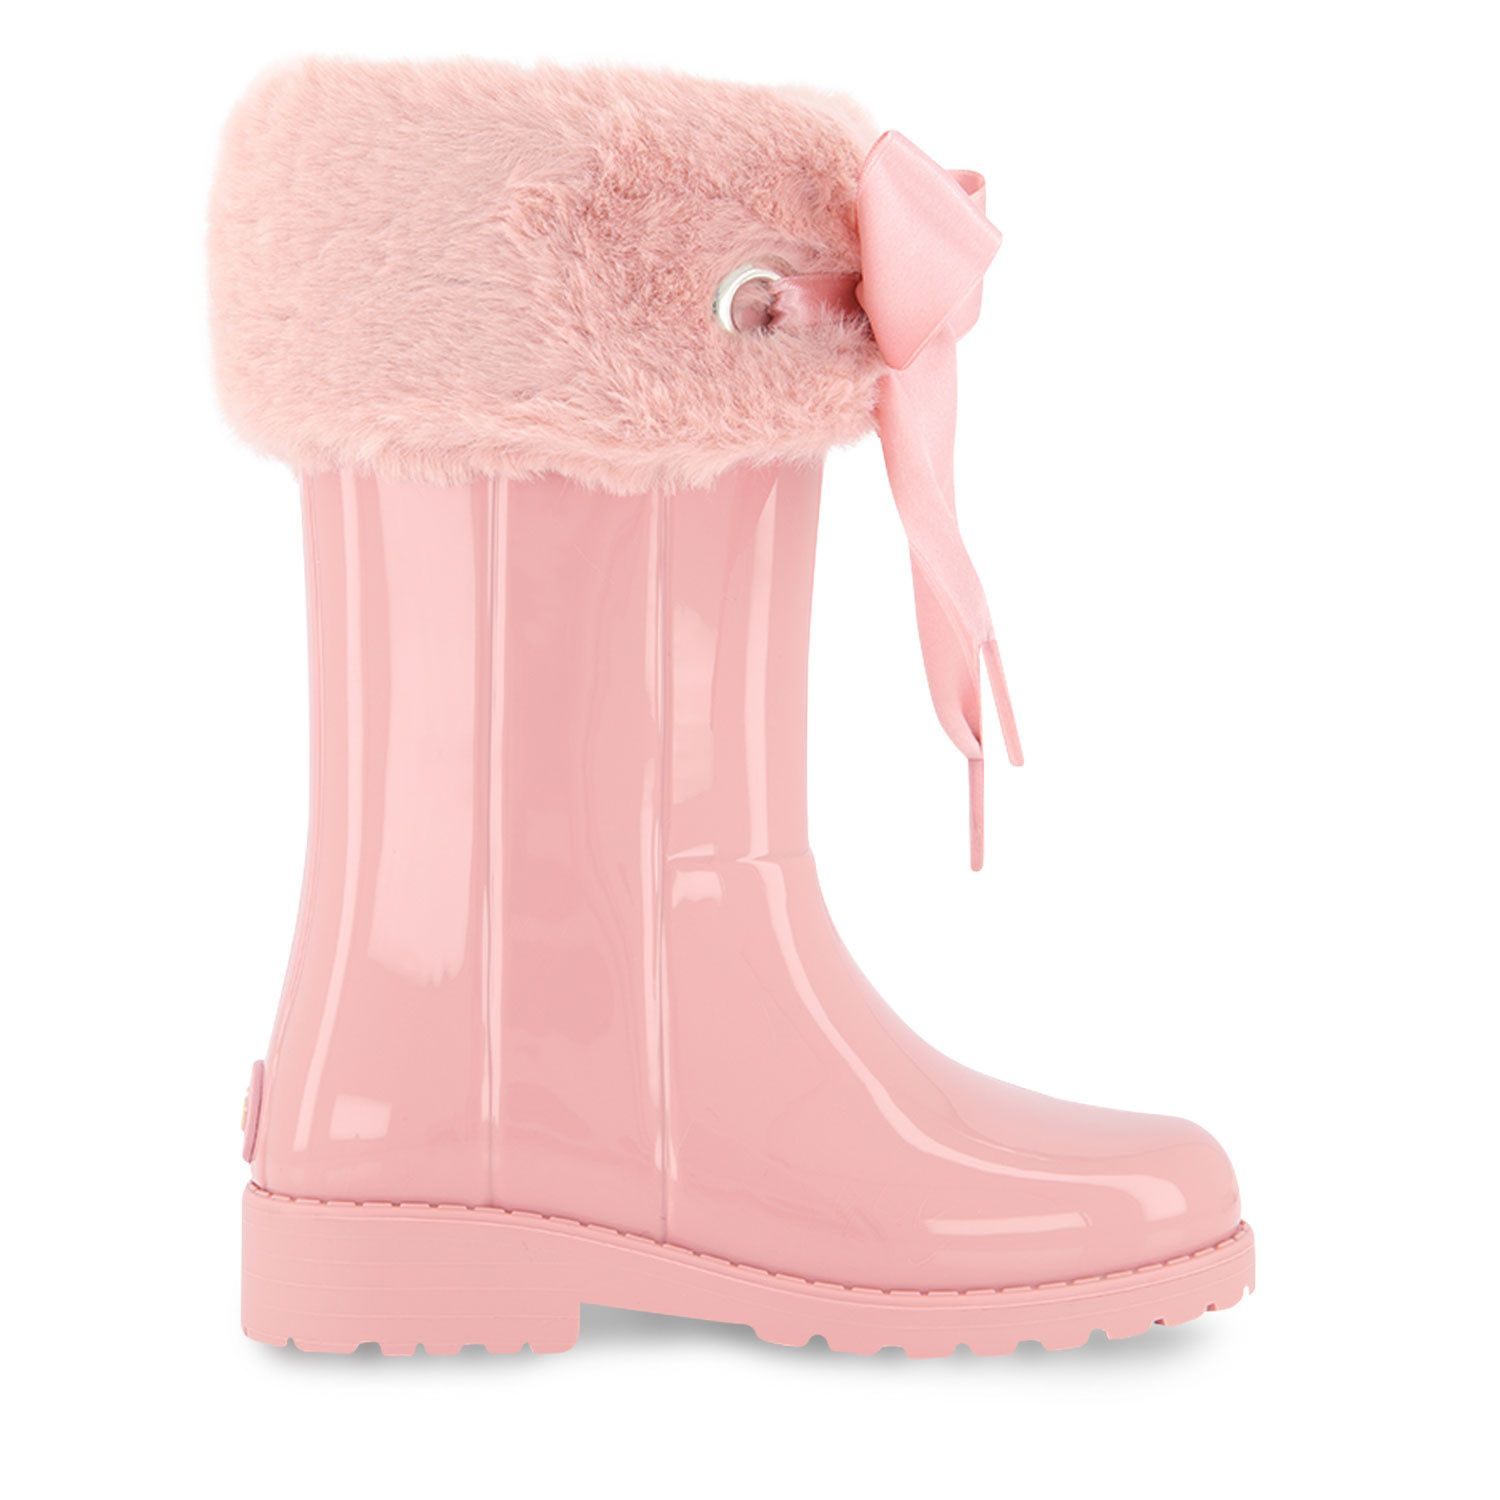 Picture of Igor W10239 kids boots light pink